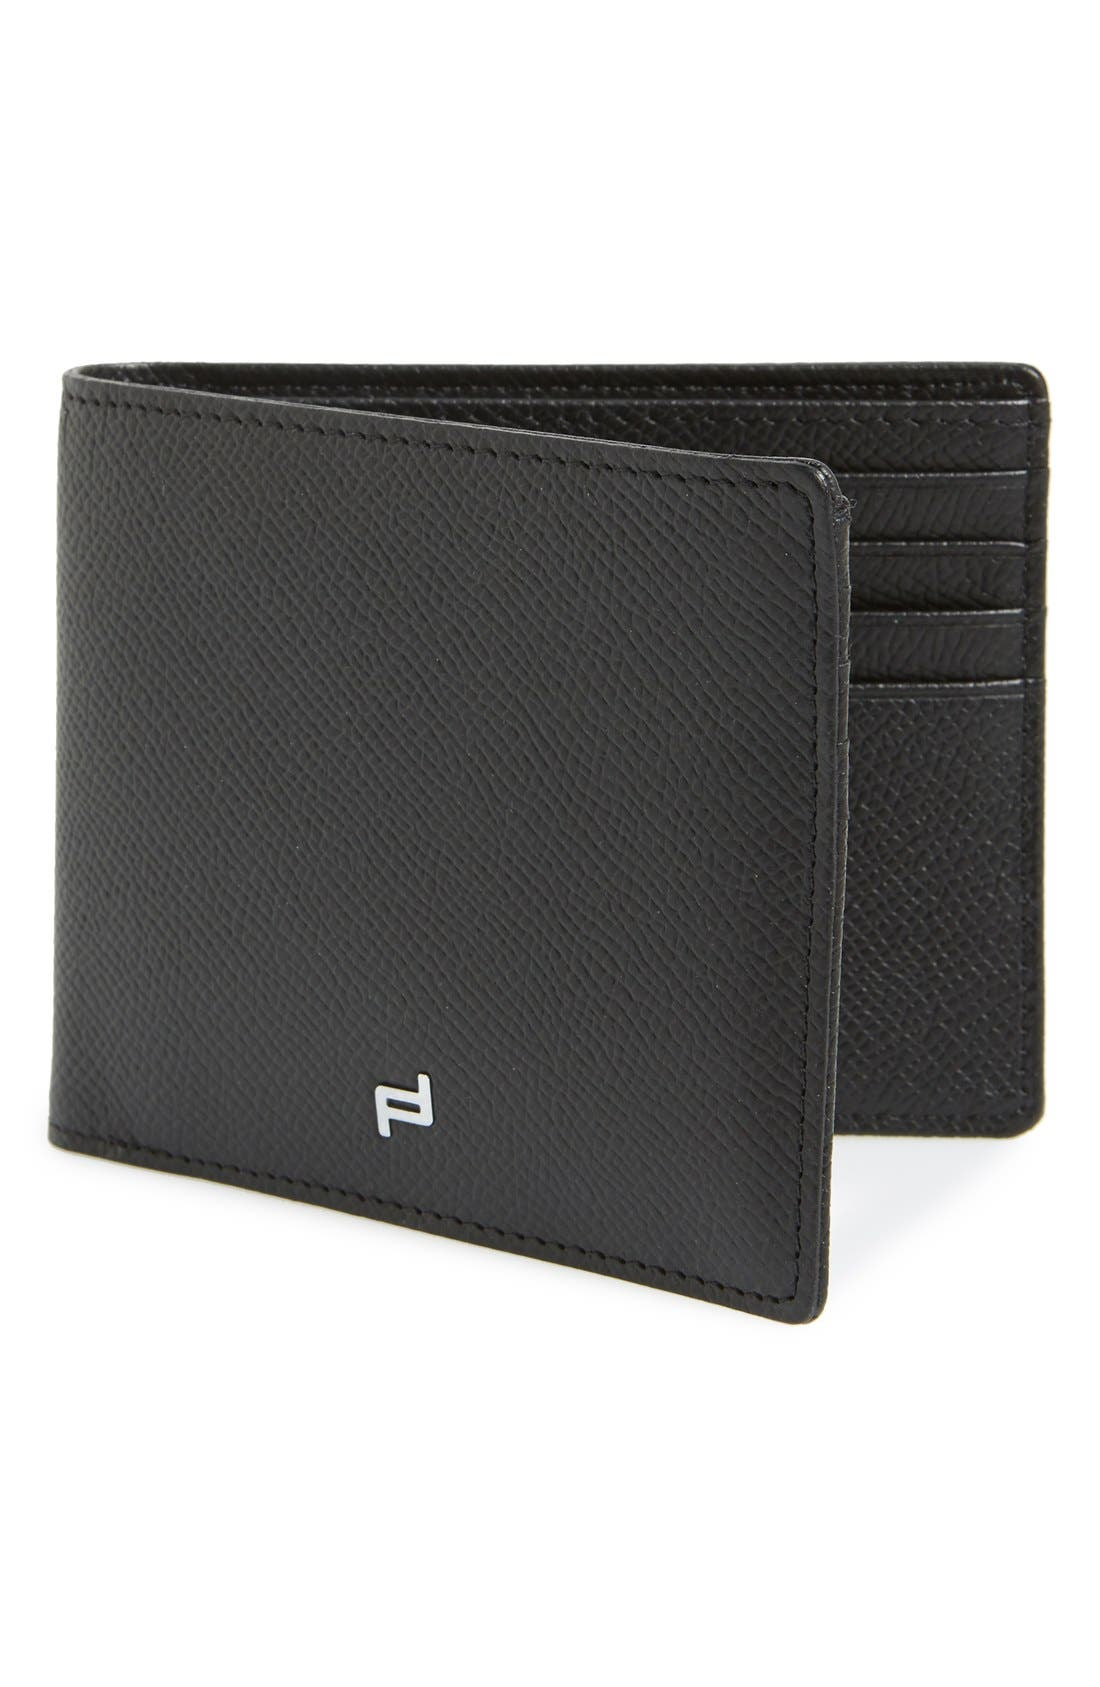 Main Image - Porsche Design 'FC 3.0'' Leather Bifold Wallet